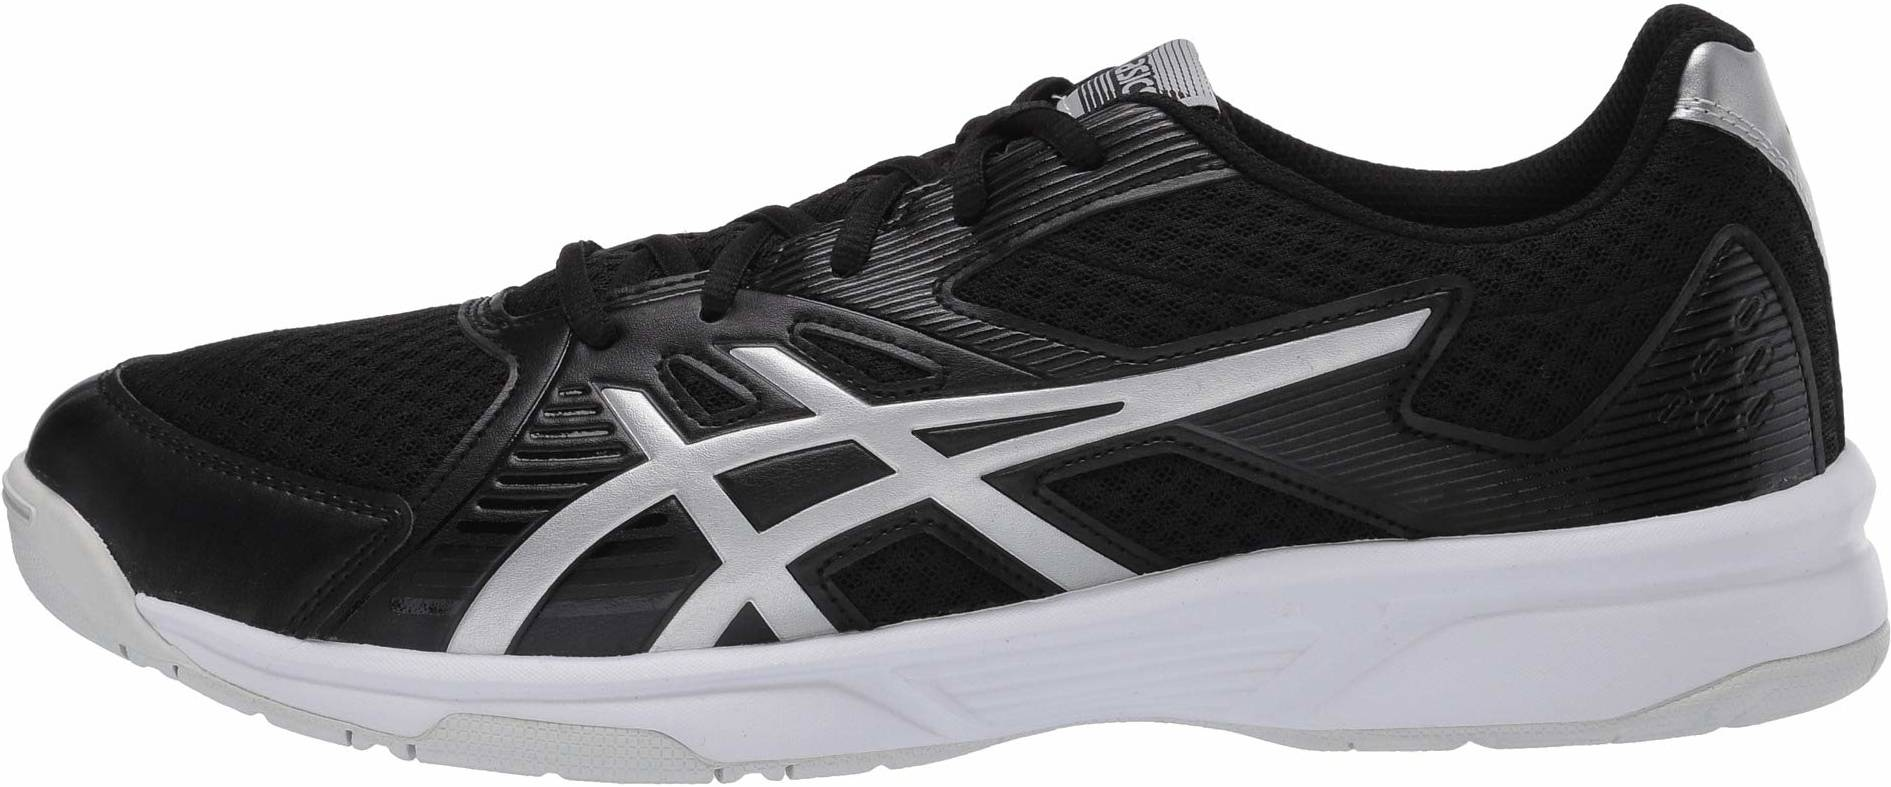 Save 34% on Asics Volleyball Shoes (19